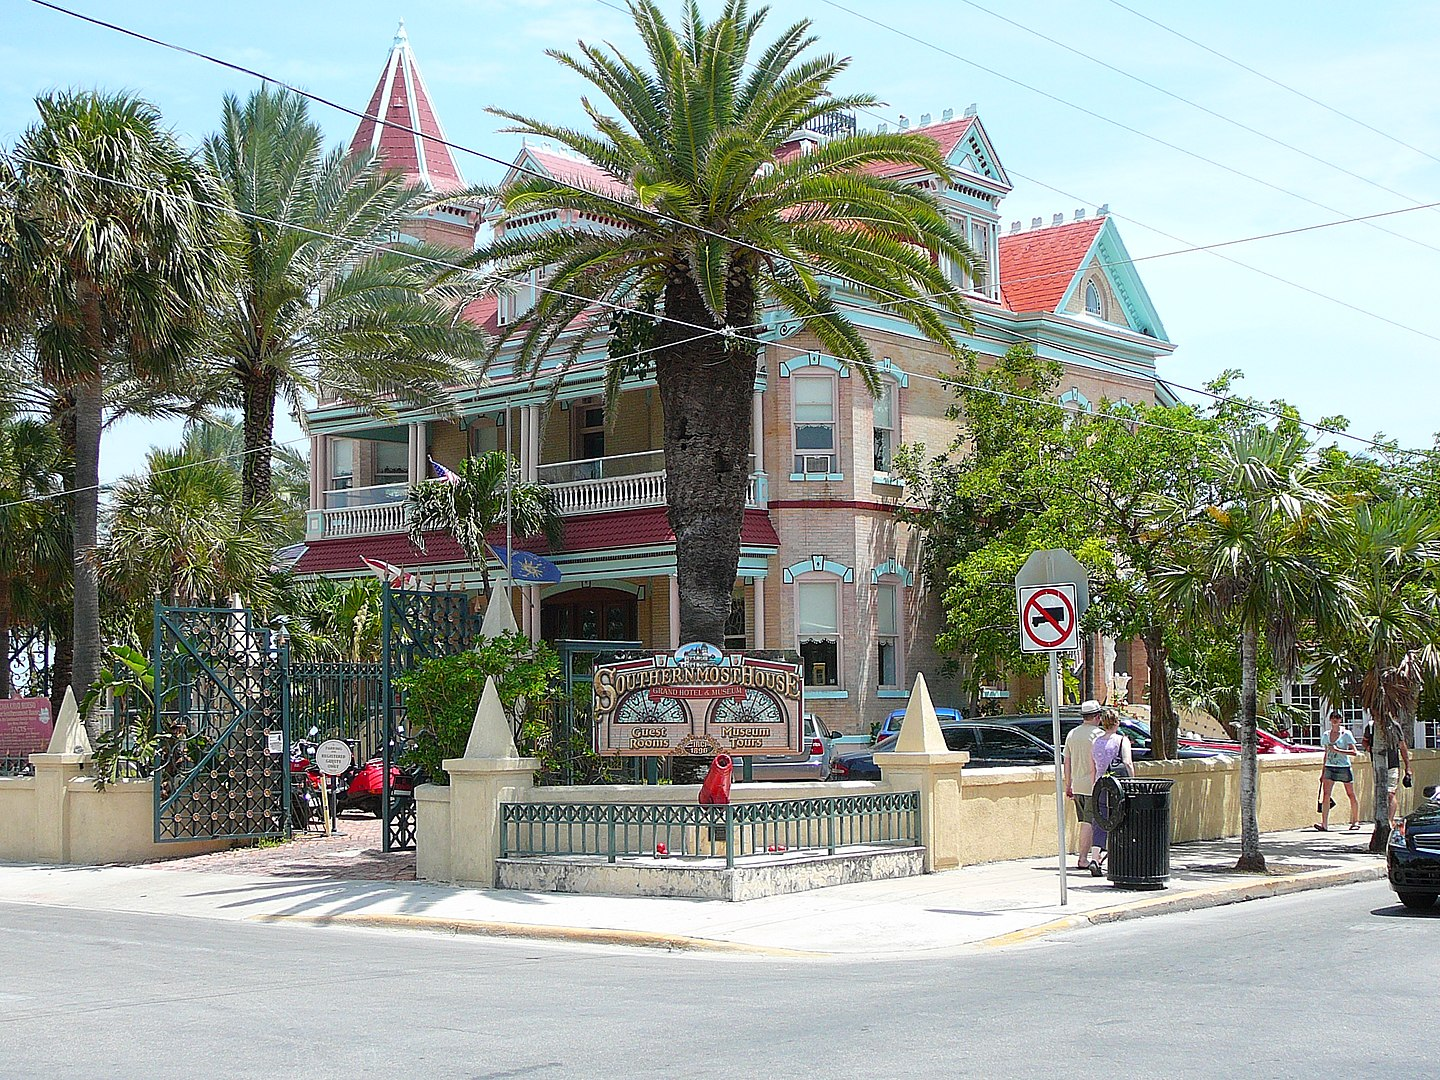 The Southernmost House Historic Inn